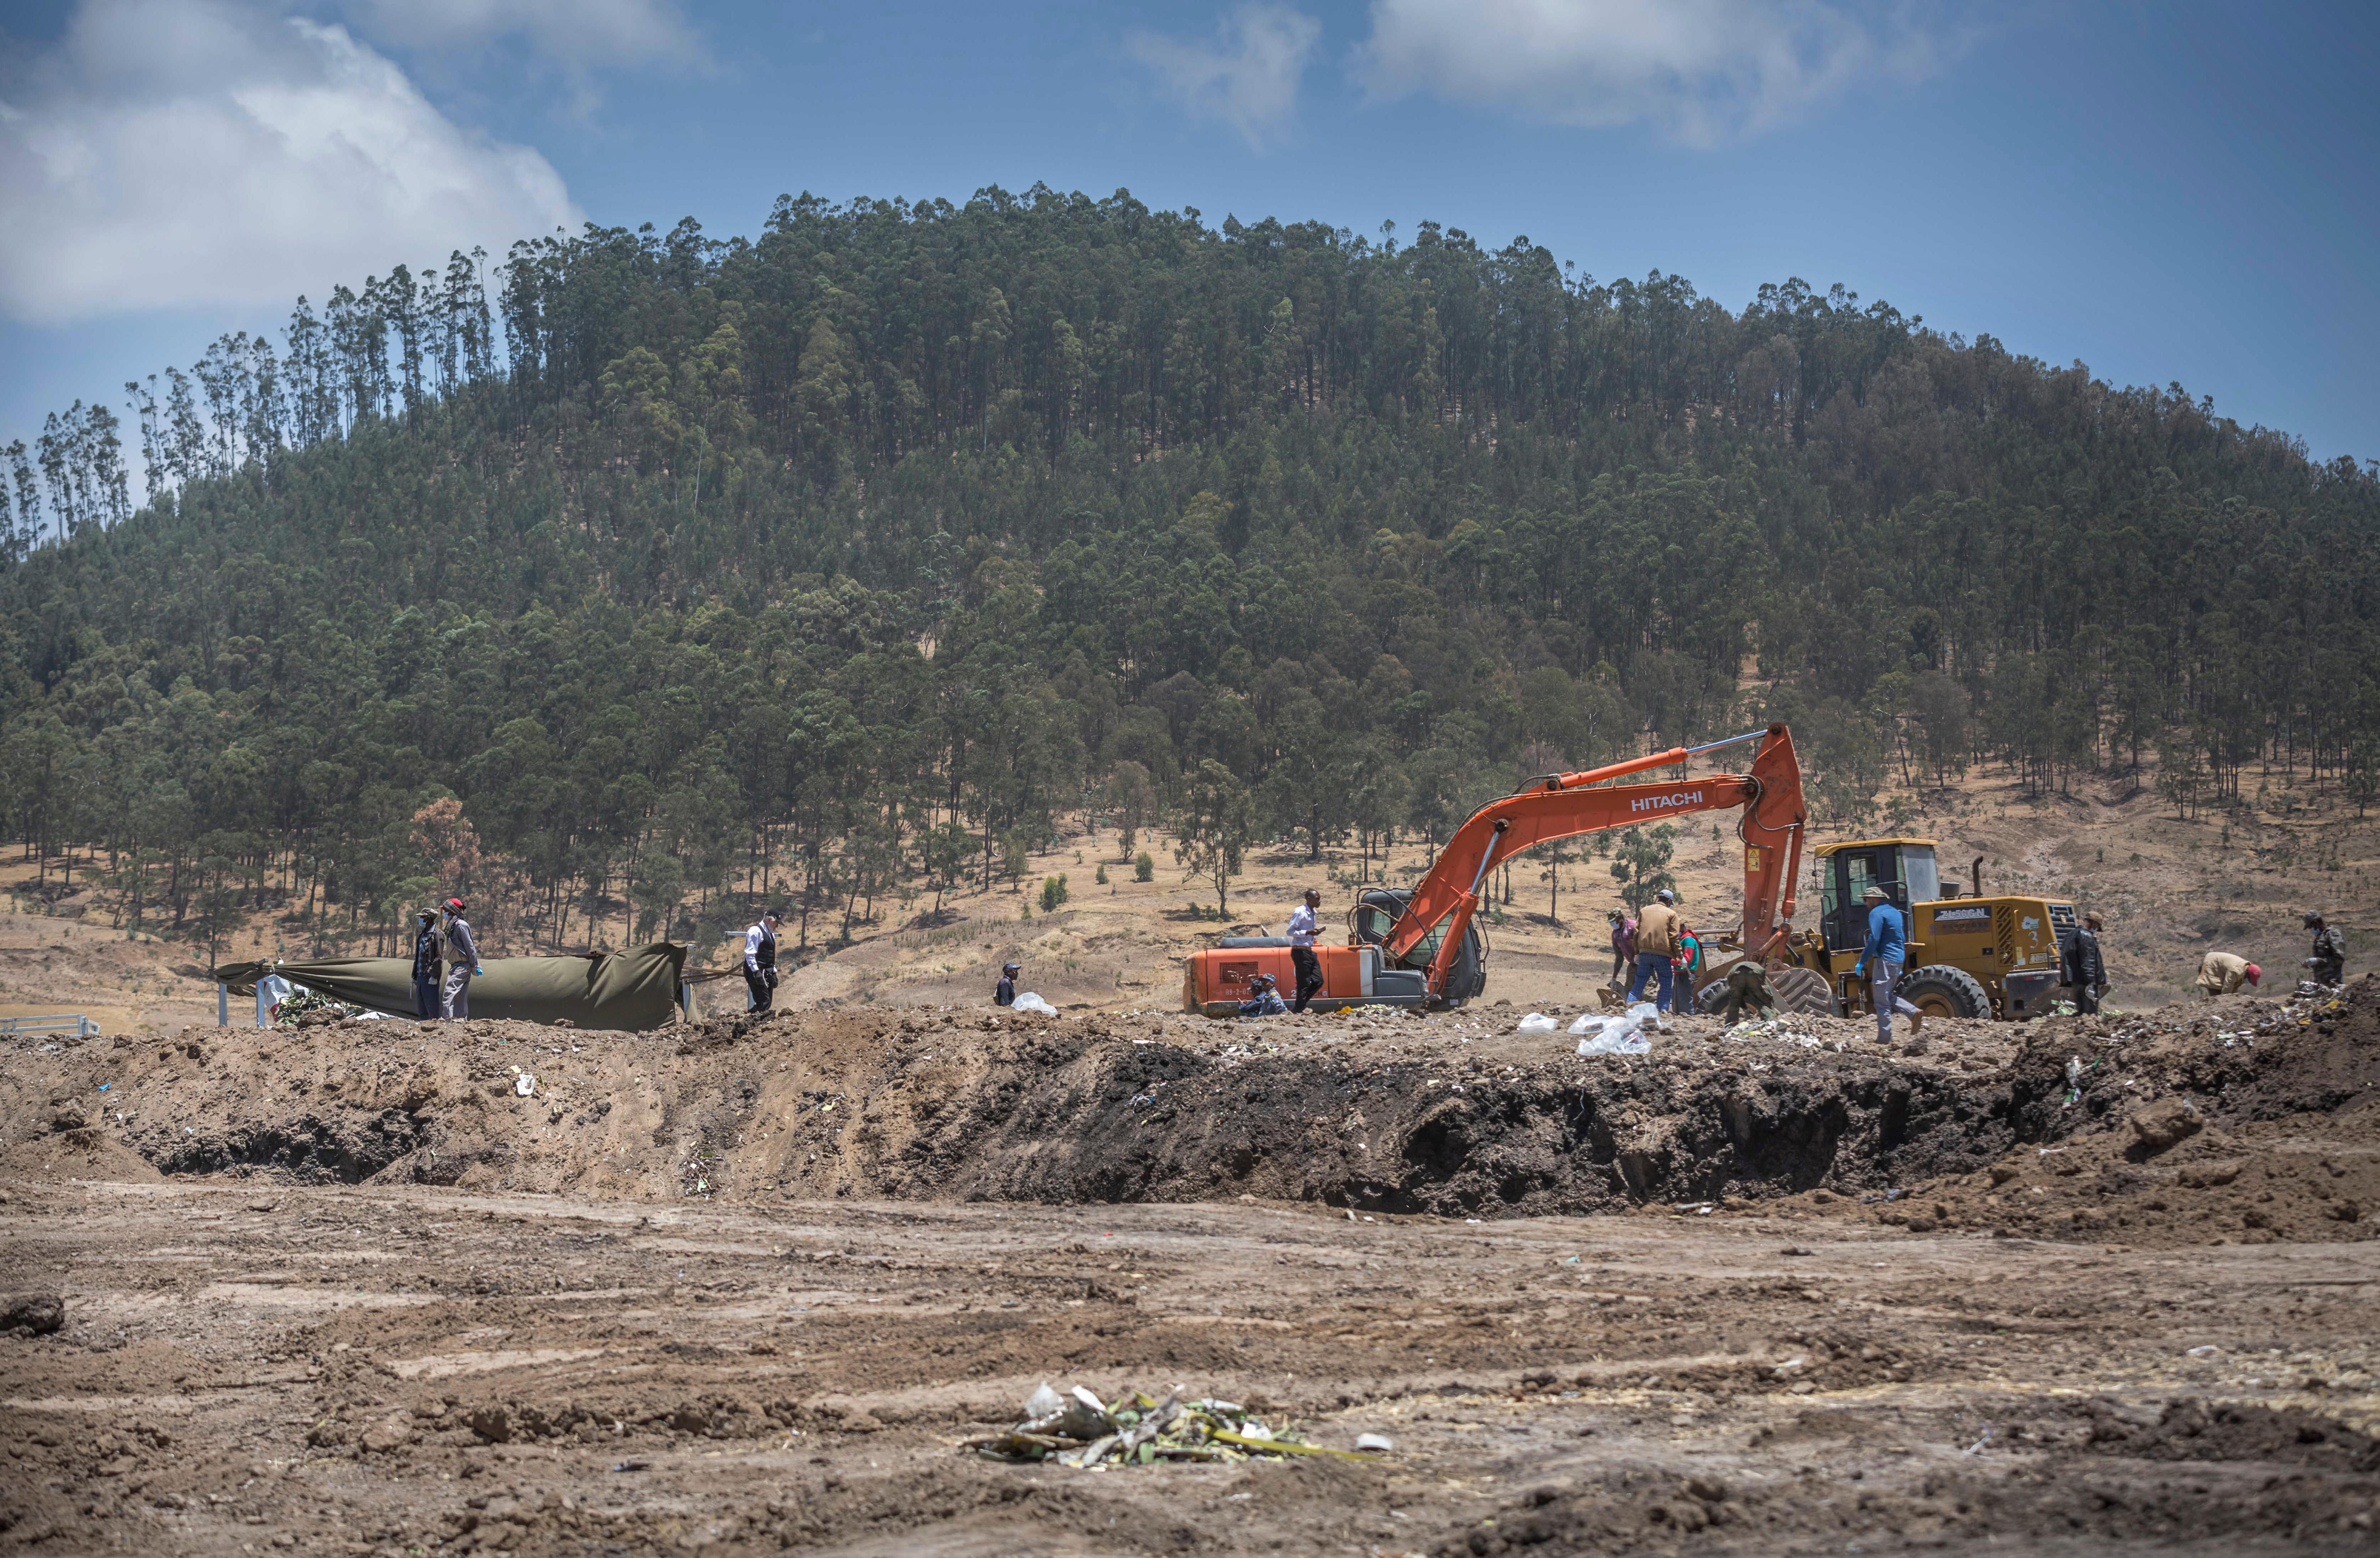 Recovery work continues at the scene where the Ethiopian Airlines Boeing 737 Max 8 crashed shortly after takeoff on Sunday killing all 157 on board, near Bishoftu, south-east of Addis Ababa, in Ethiopia Friday, March 15.. (AP Photo/Mulugeta Ayene)